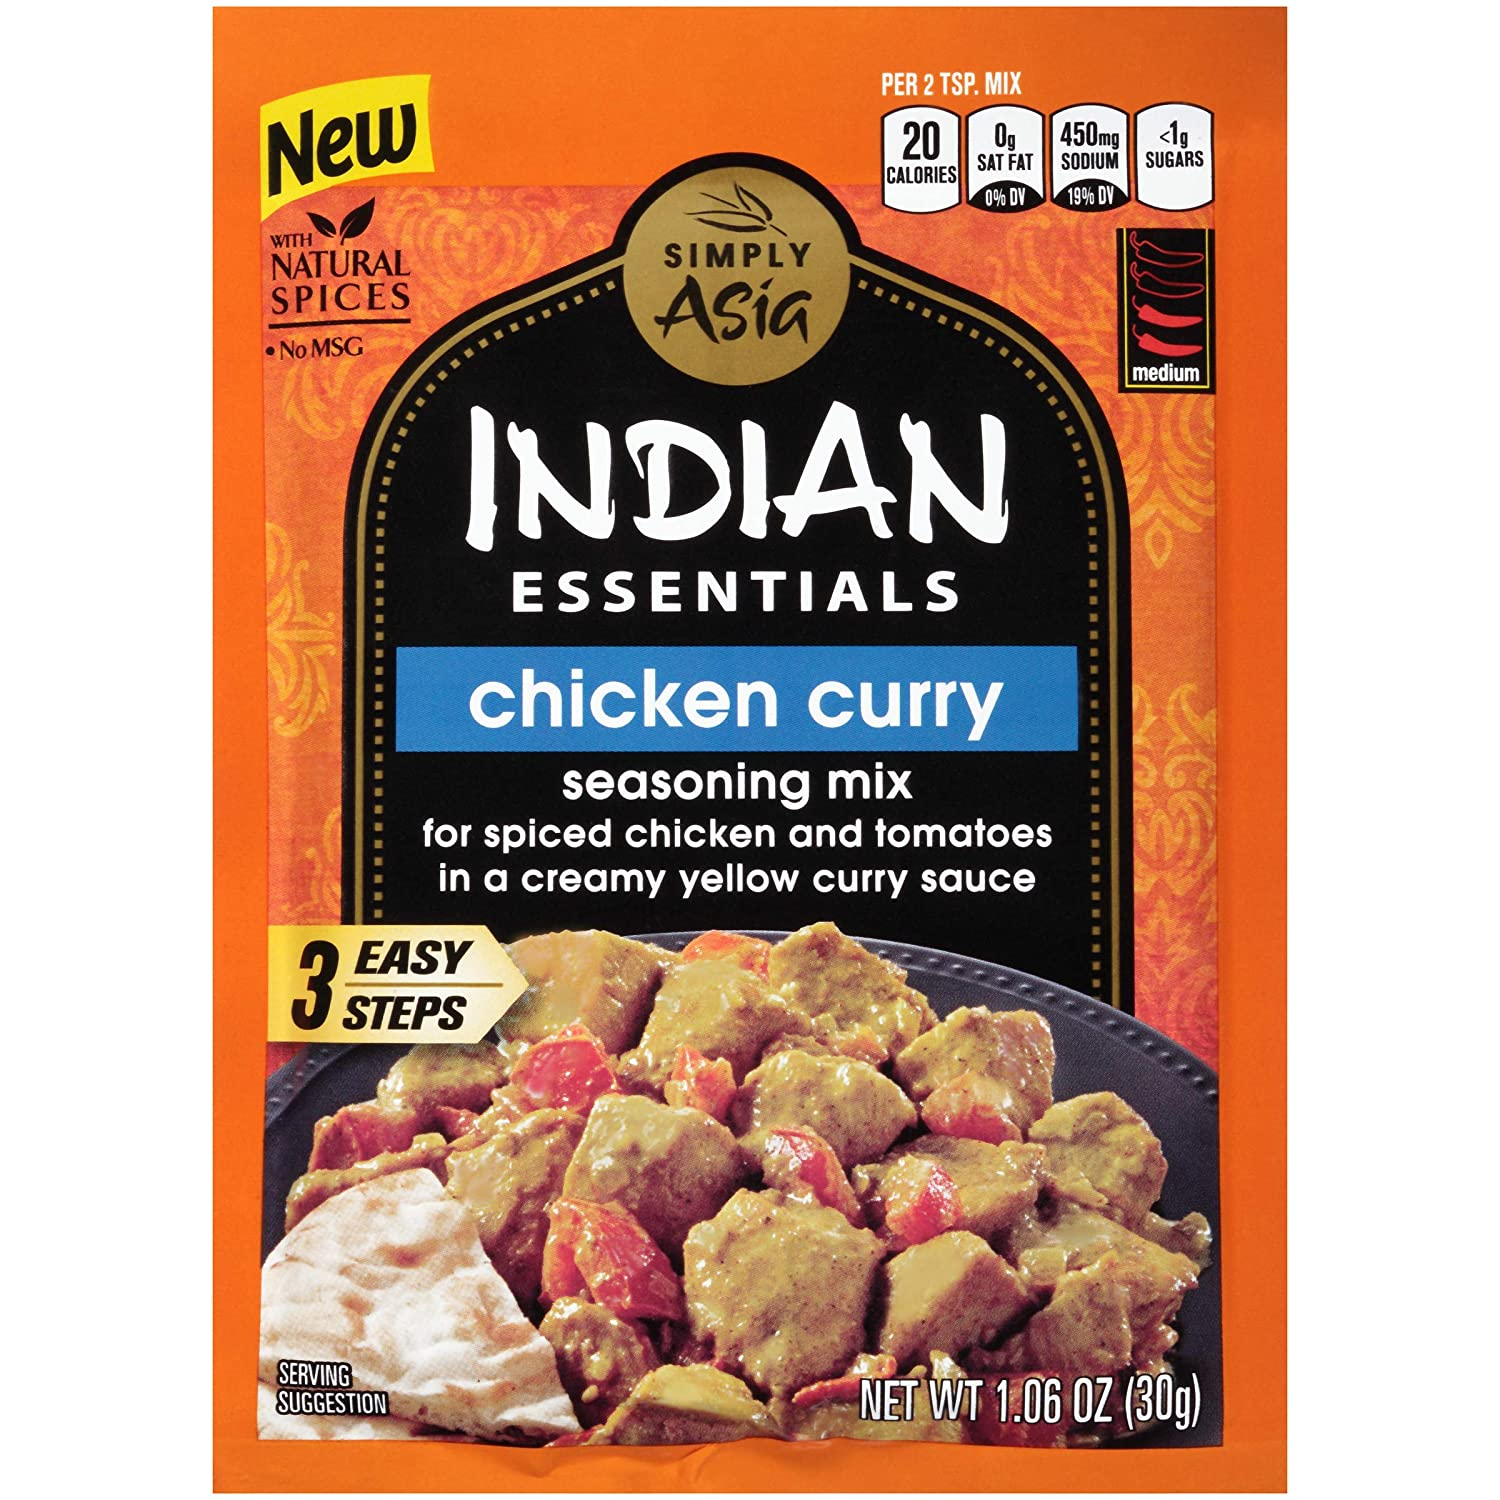 Simply Asia Indian Essentials Chicken Curry Seasoning Mix, 1.06 oz/pack(Pack of 12)